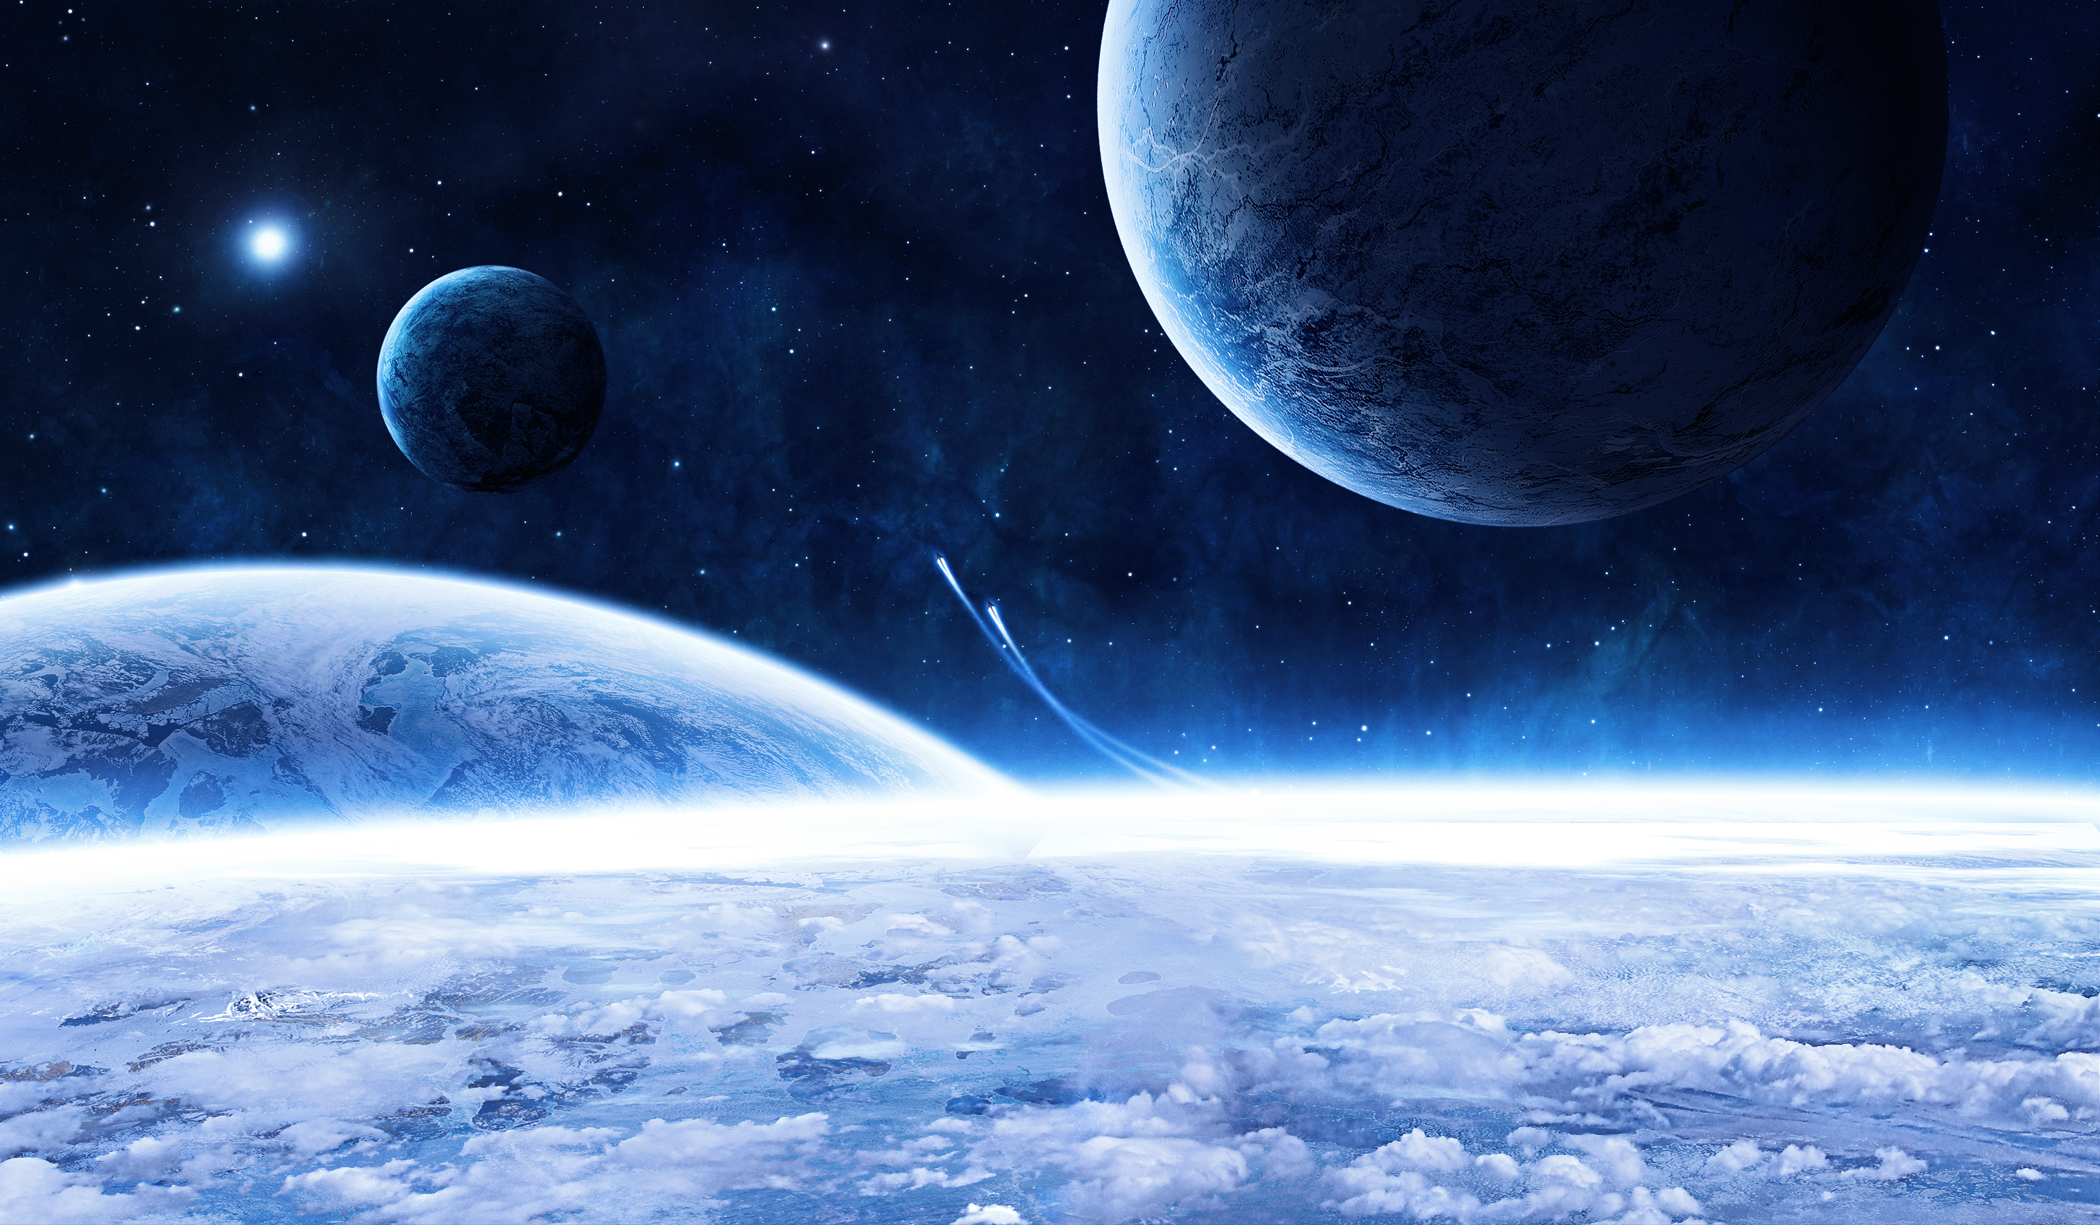 planets and space - HD